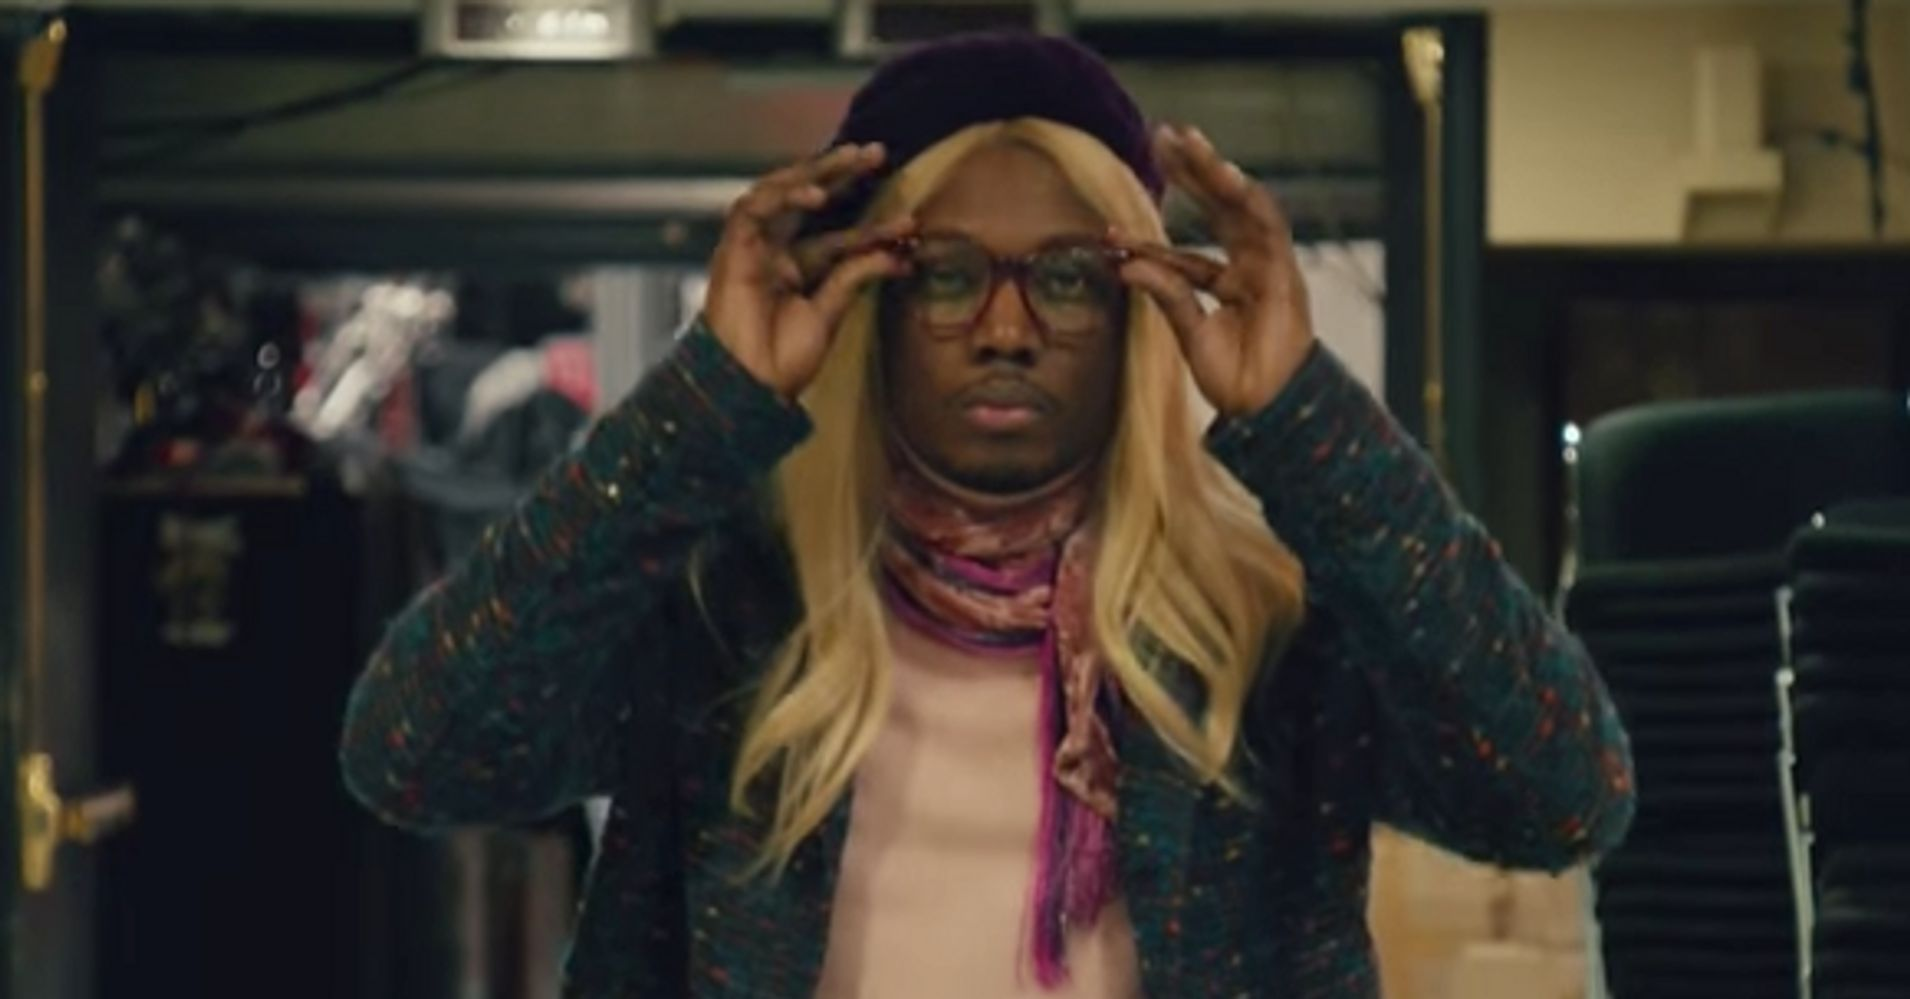 SNL's Michael Che Goes Undercover As A Liberal White Woman In Hilarious Sketch